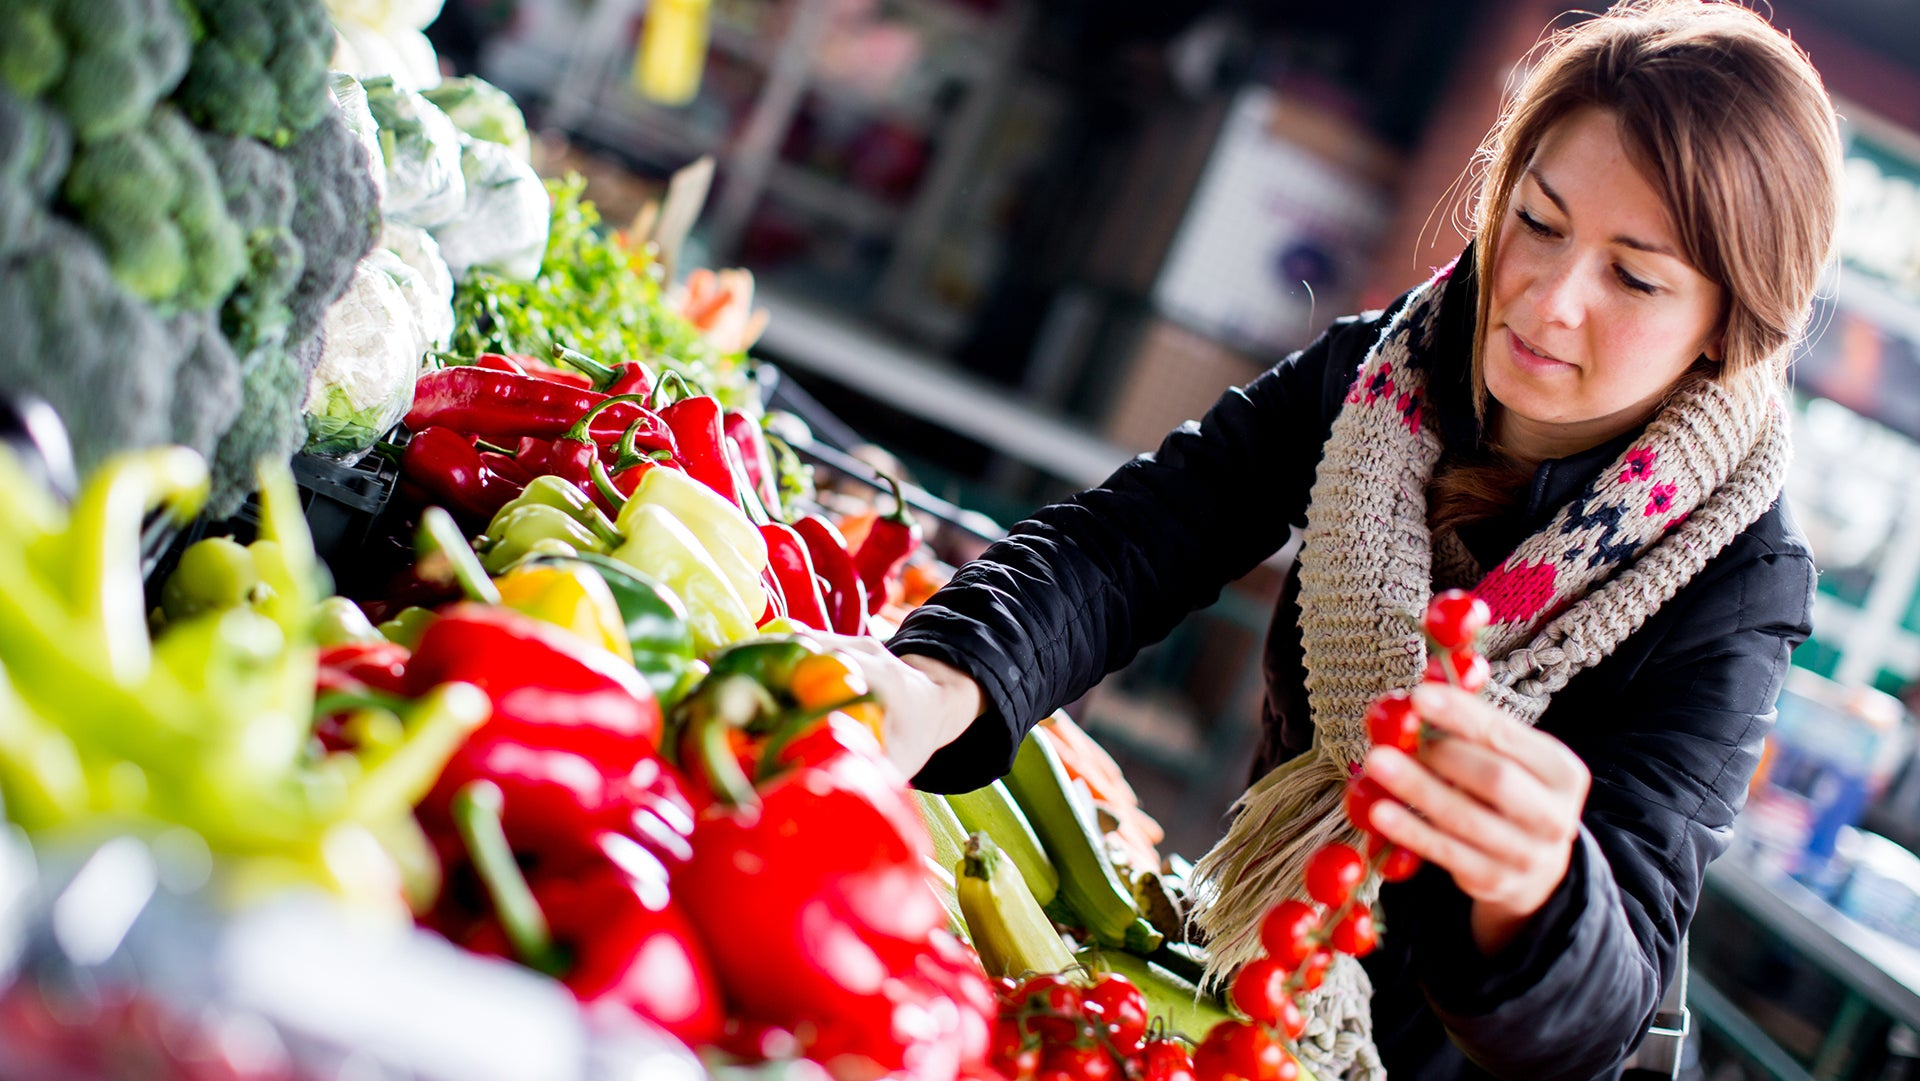 Lady purchasing a vegetable